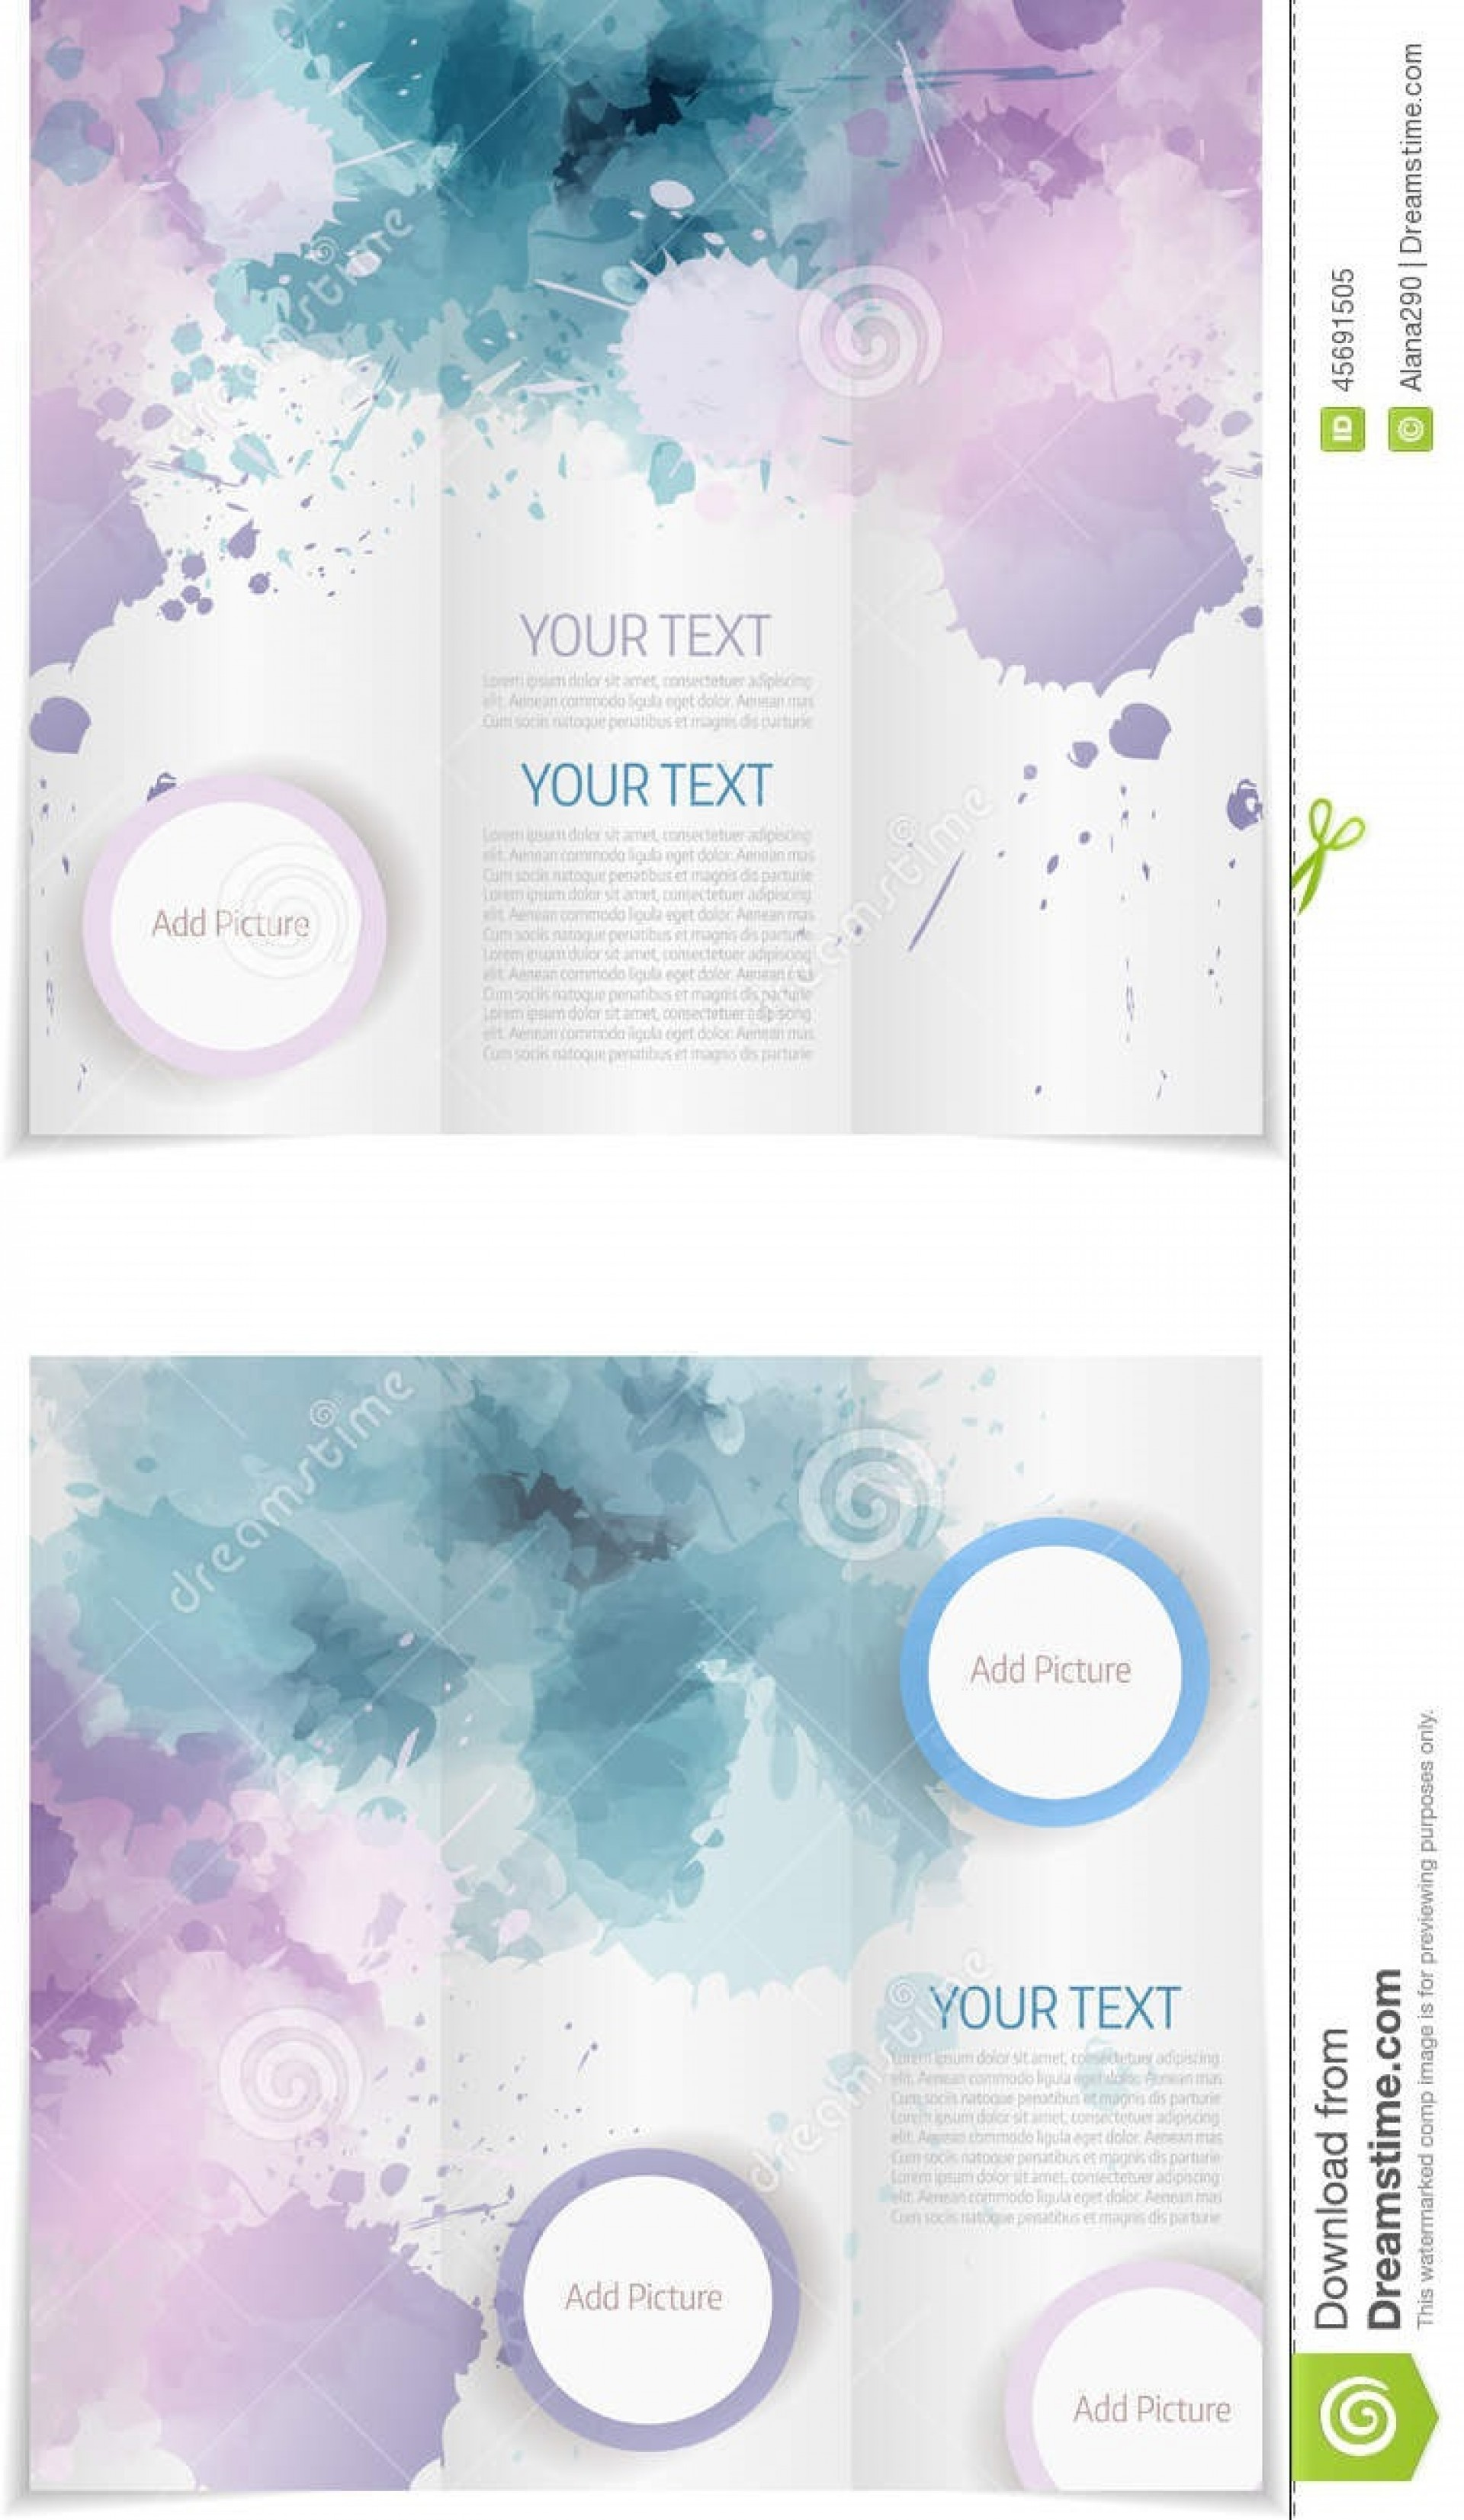 009 Stupendou Publisher Brochure Template Free Inspiration  Tri Fold Microsoft Download Bi1920